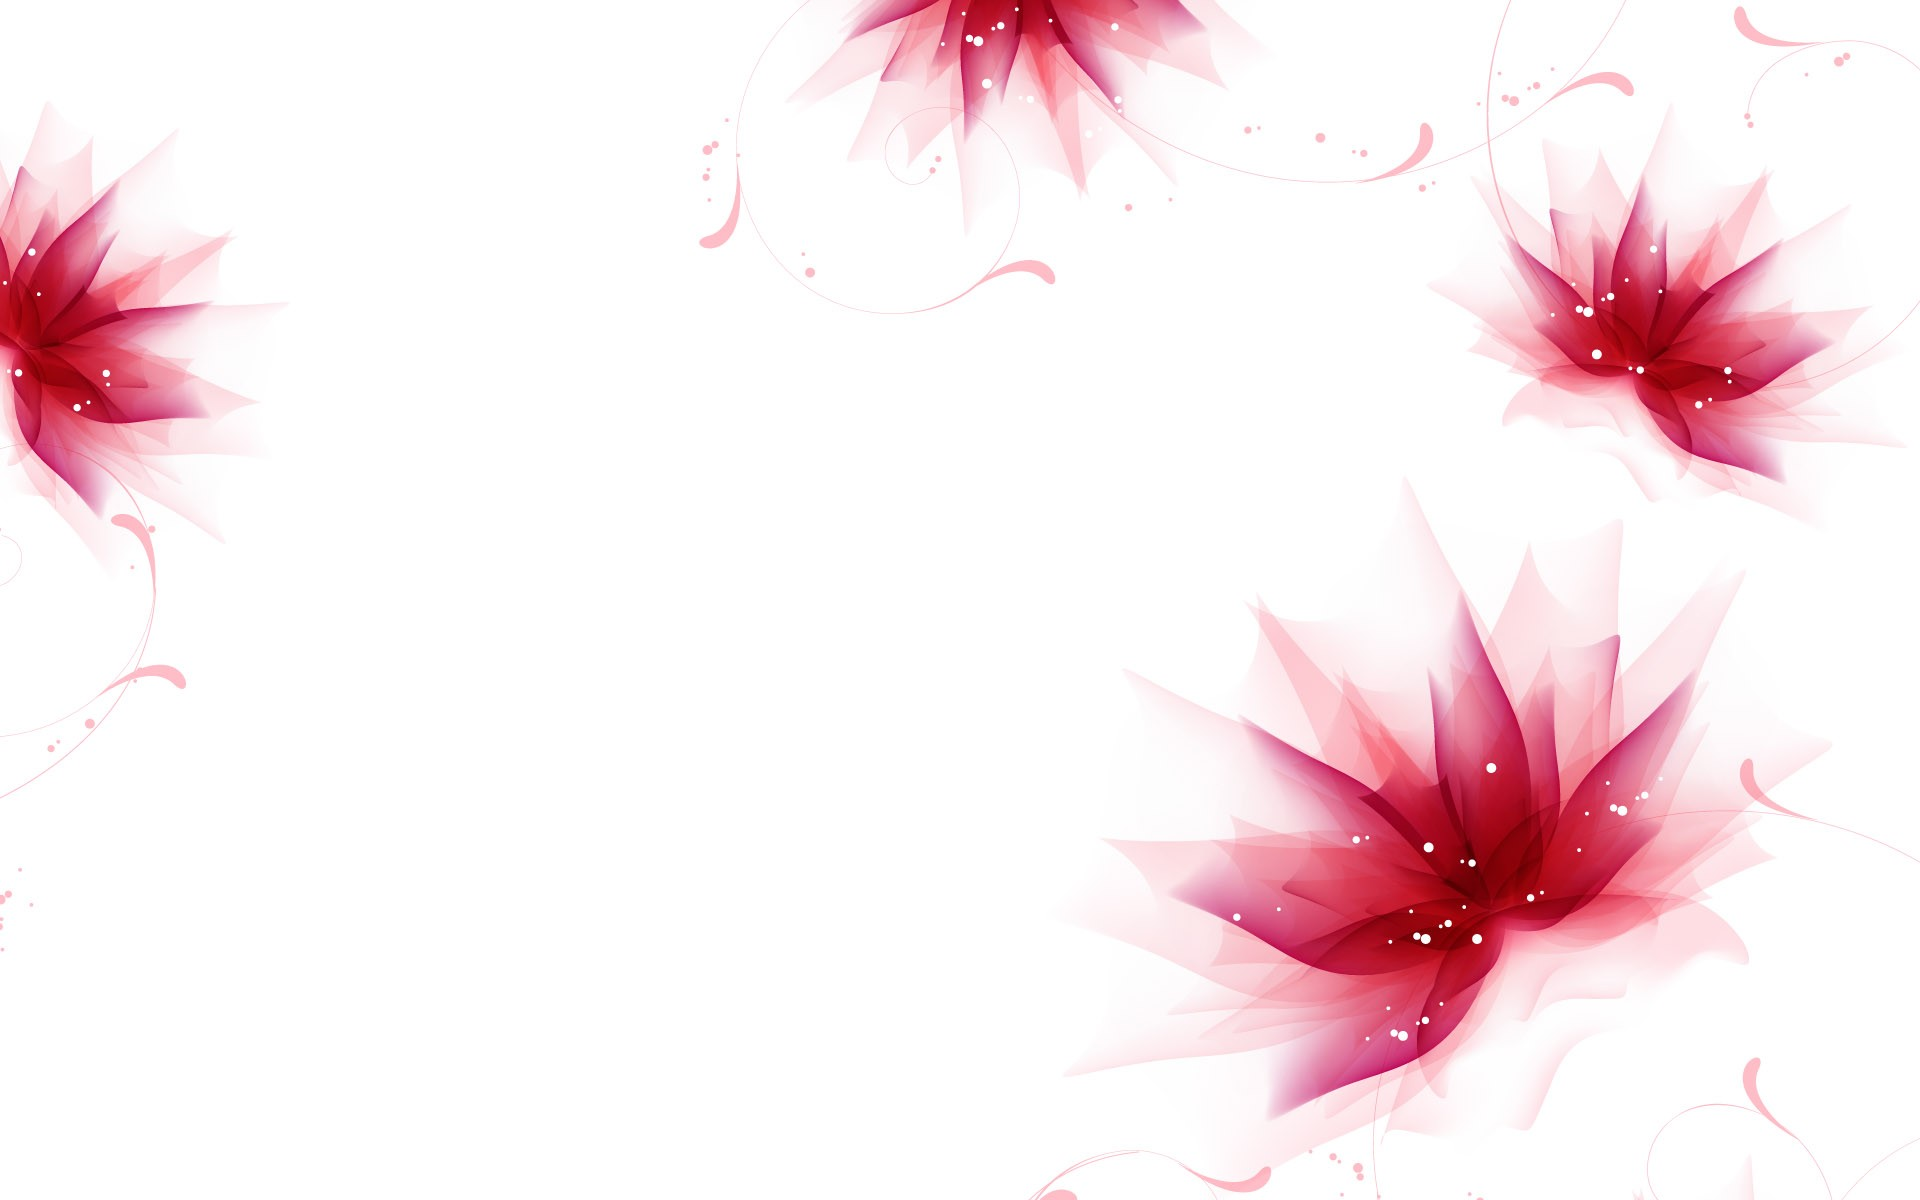 Computer Lock Screen Wallpapers Girls Floral Background 183 ① Download Free High Resolution